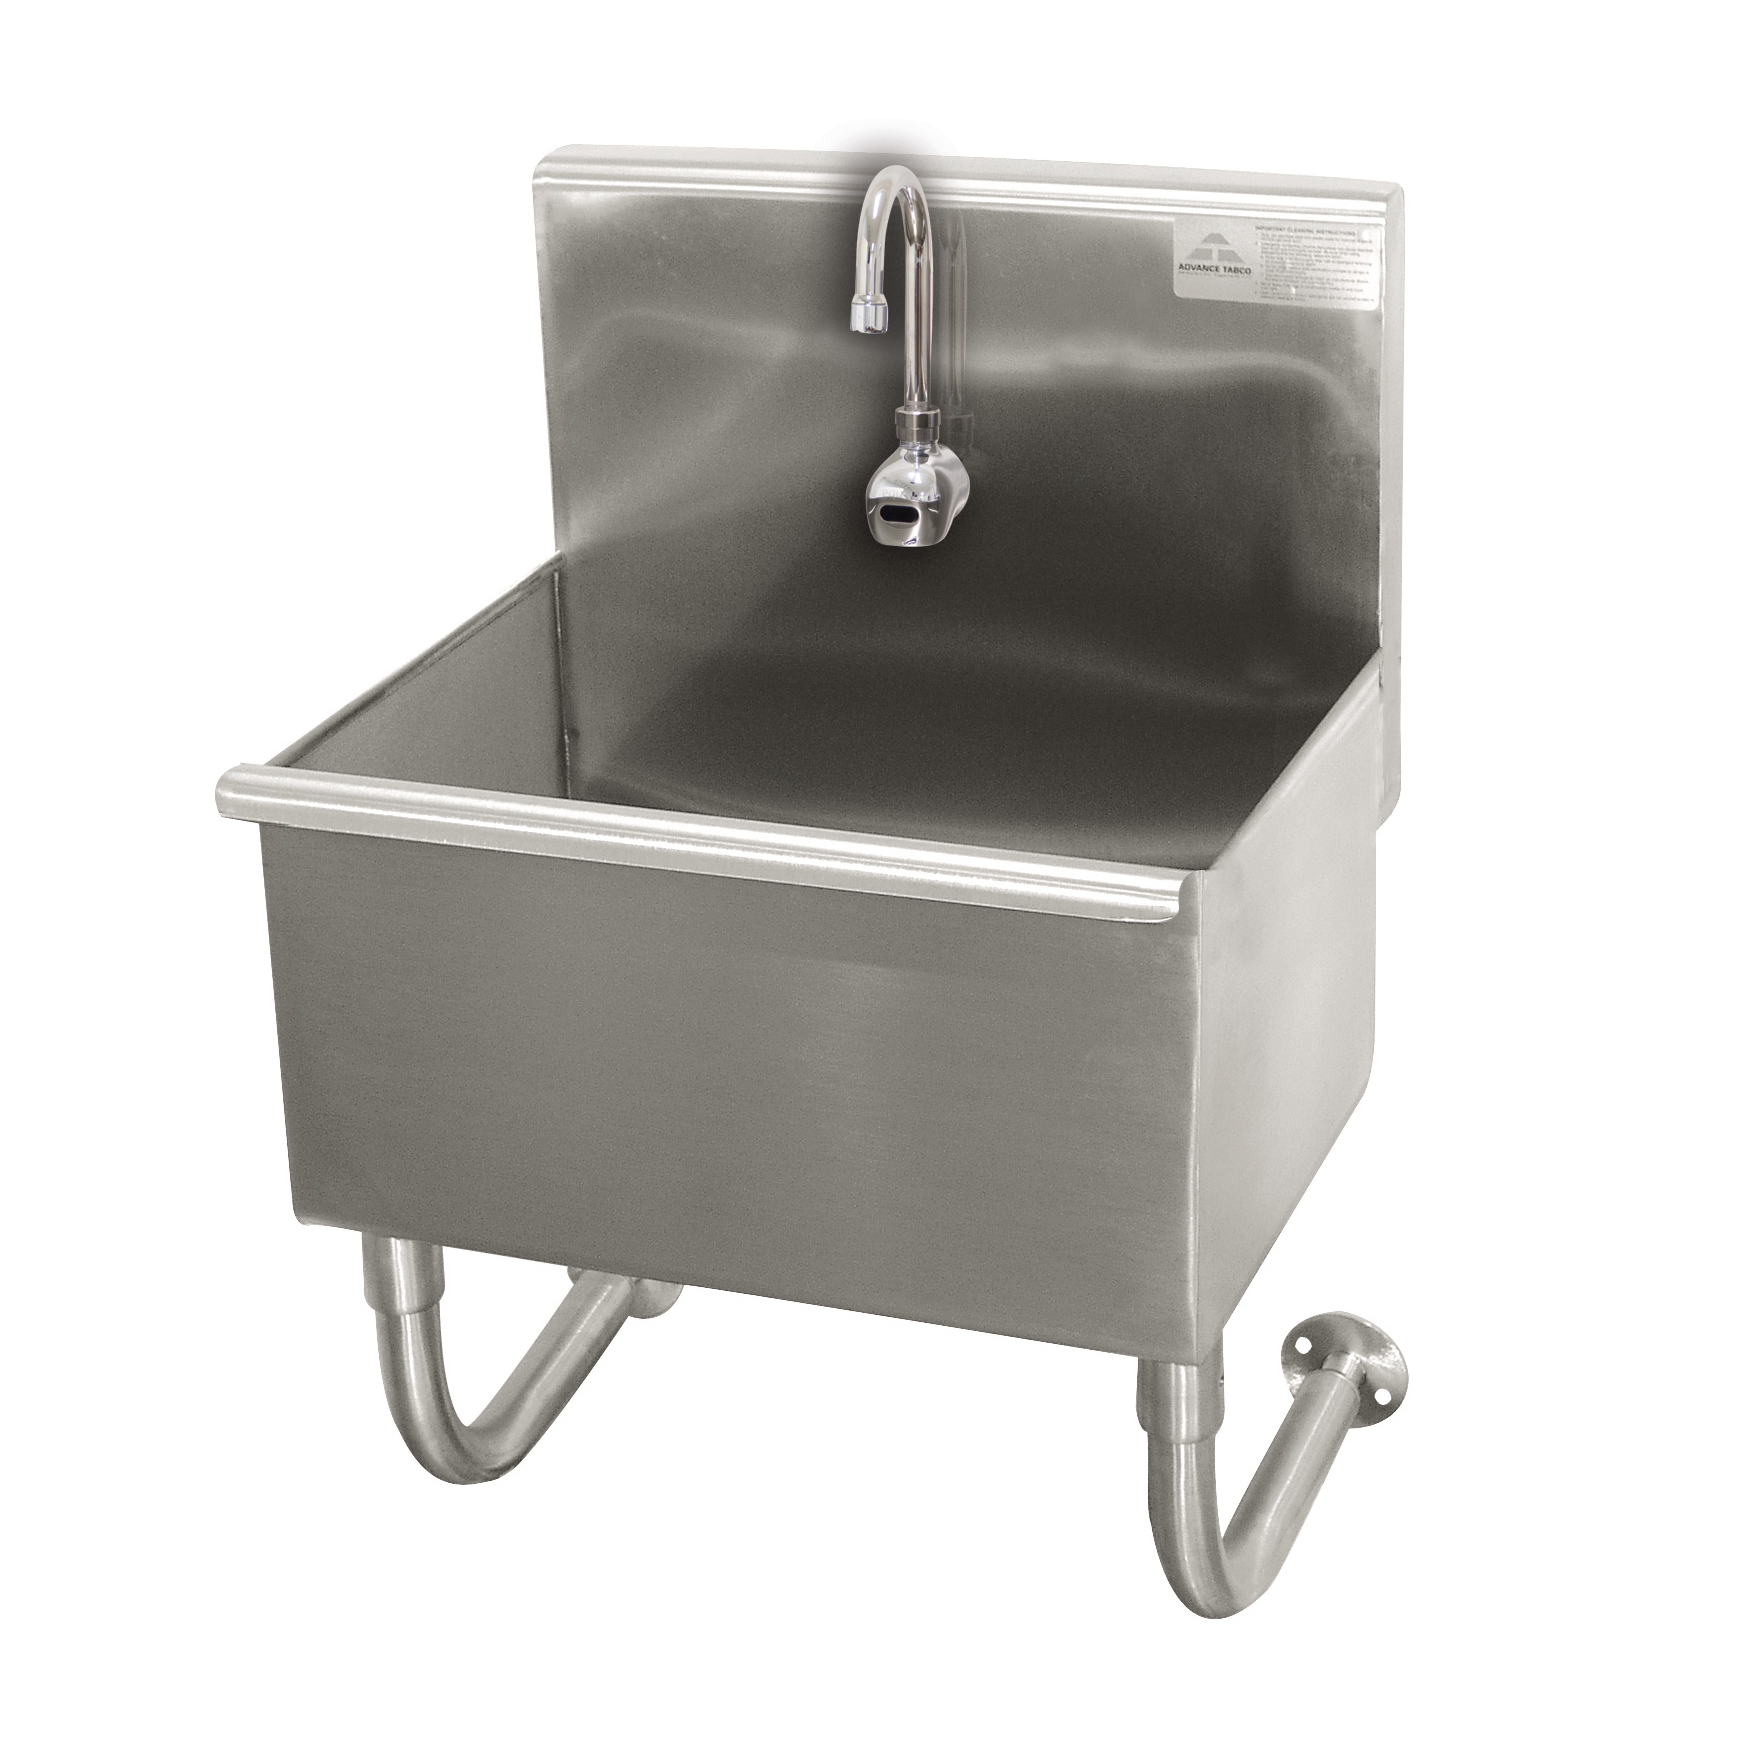 Advance Tabco WSS-14-21EF sink, hand